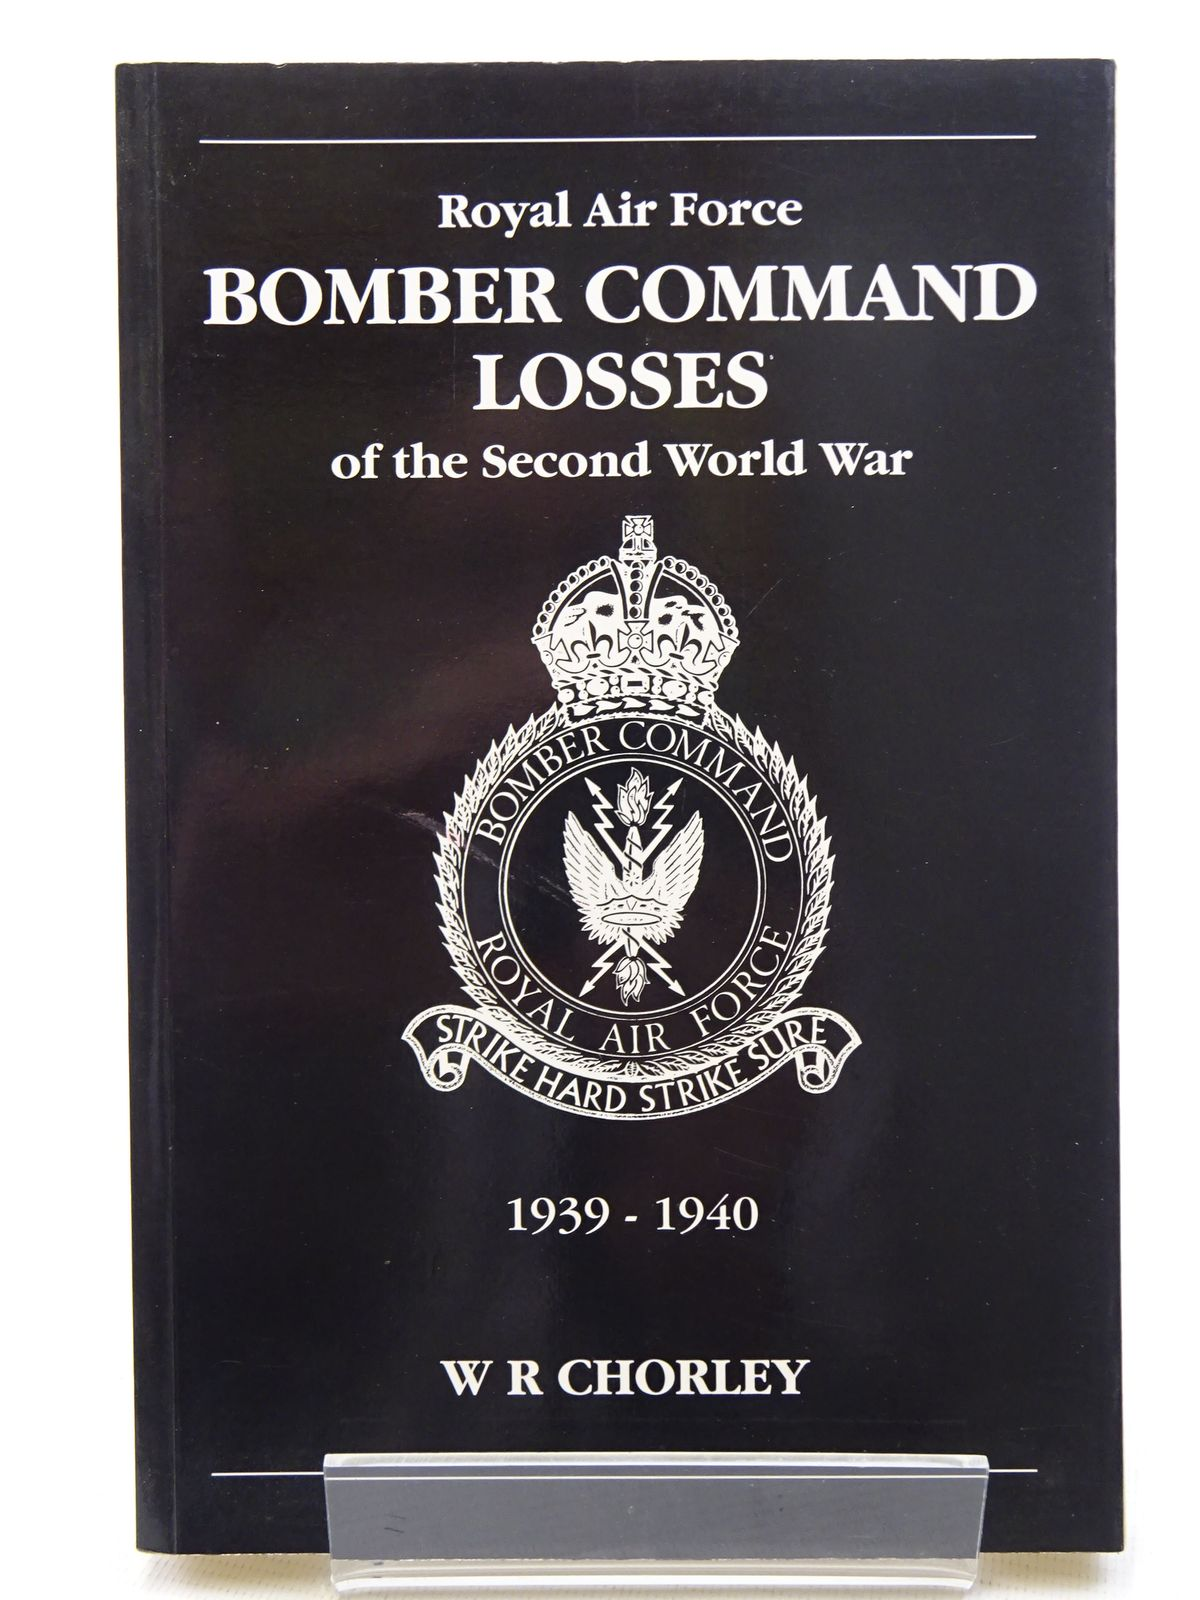 Photo of ROYAL AIR FORCE BOMBER COMMAND LOSSES OF THE SECOND WORLD WAR VOLUME 1 written by Chorley, W.R. published by Midland Publishing (STOCK CODE: 1610601)  for sale by Stella & Rose's Books